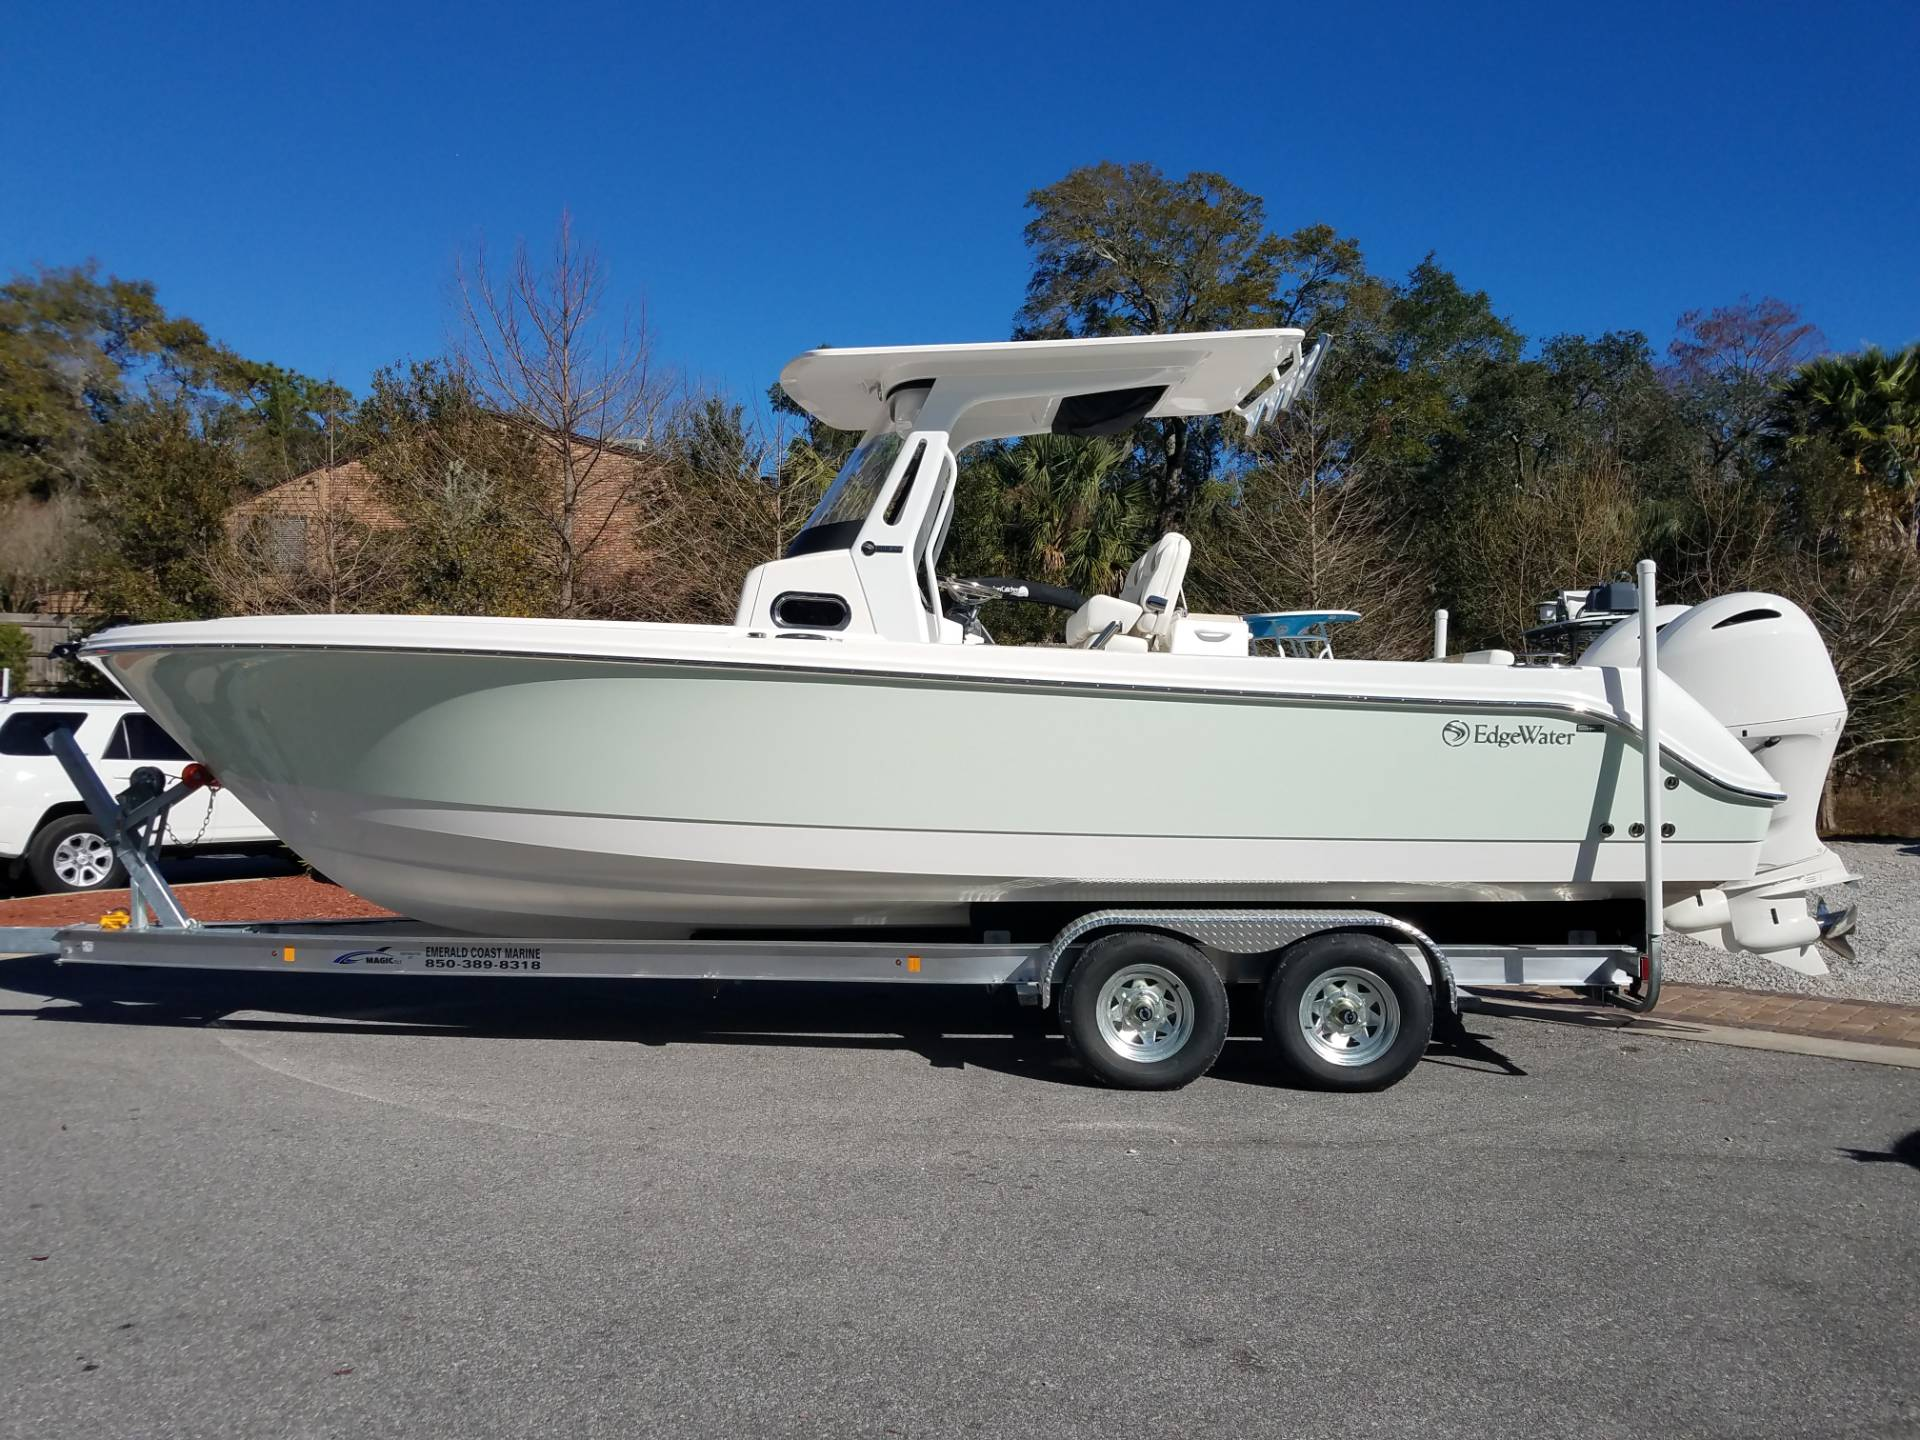 2017 Edgewater 262 CC in Niceville, Florida